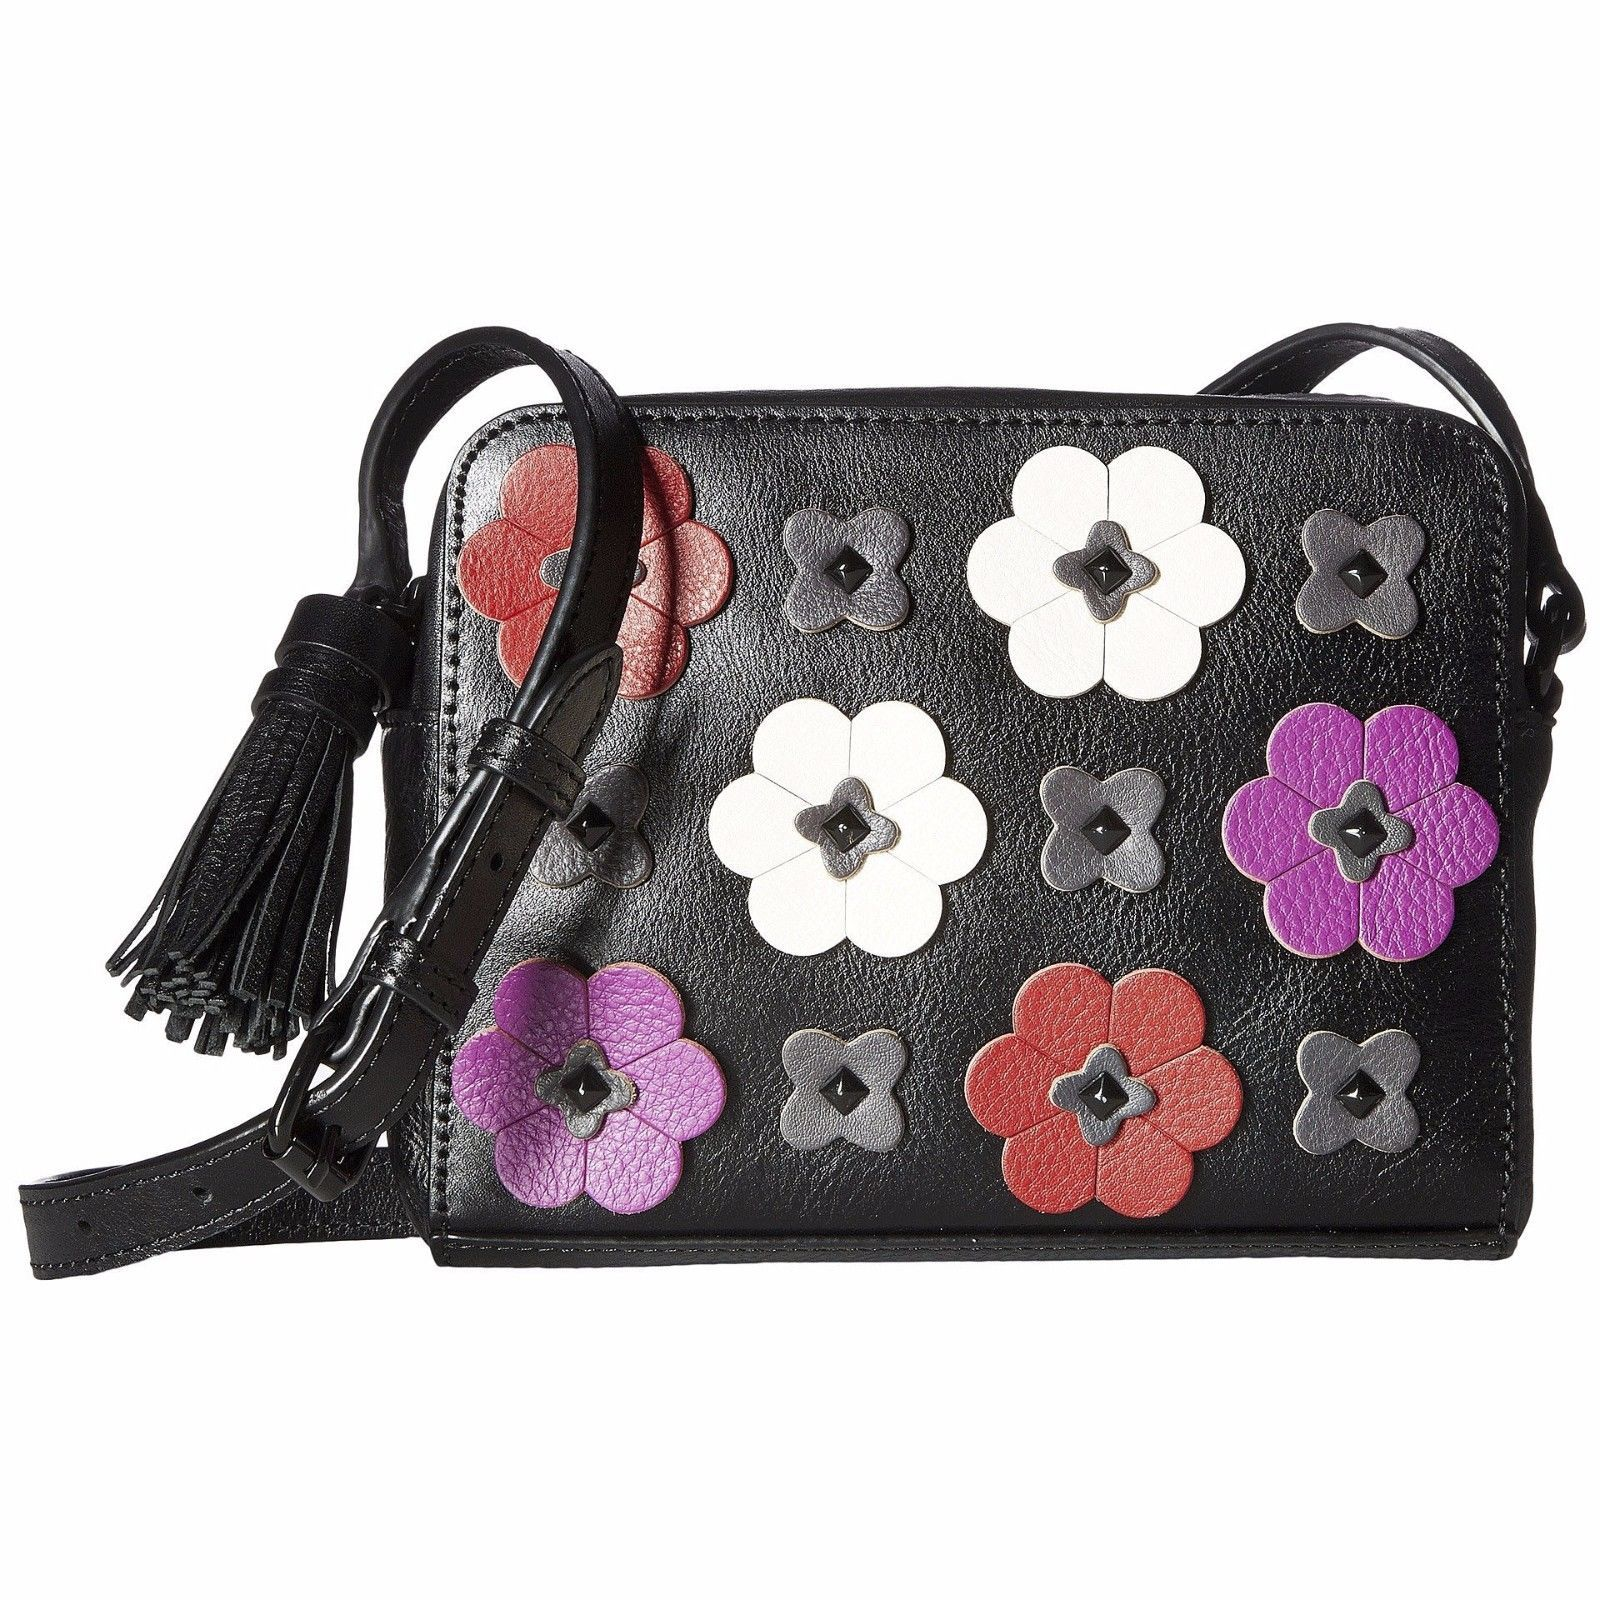 Primary image for Rebecca Minkoff Black Pink Leather Floral Applique Camera Crossbody Bag NWT